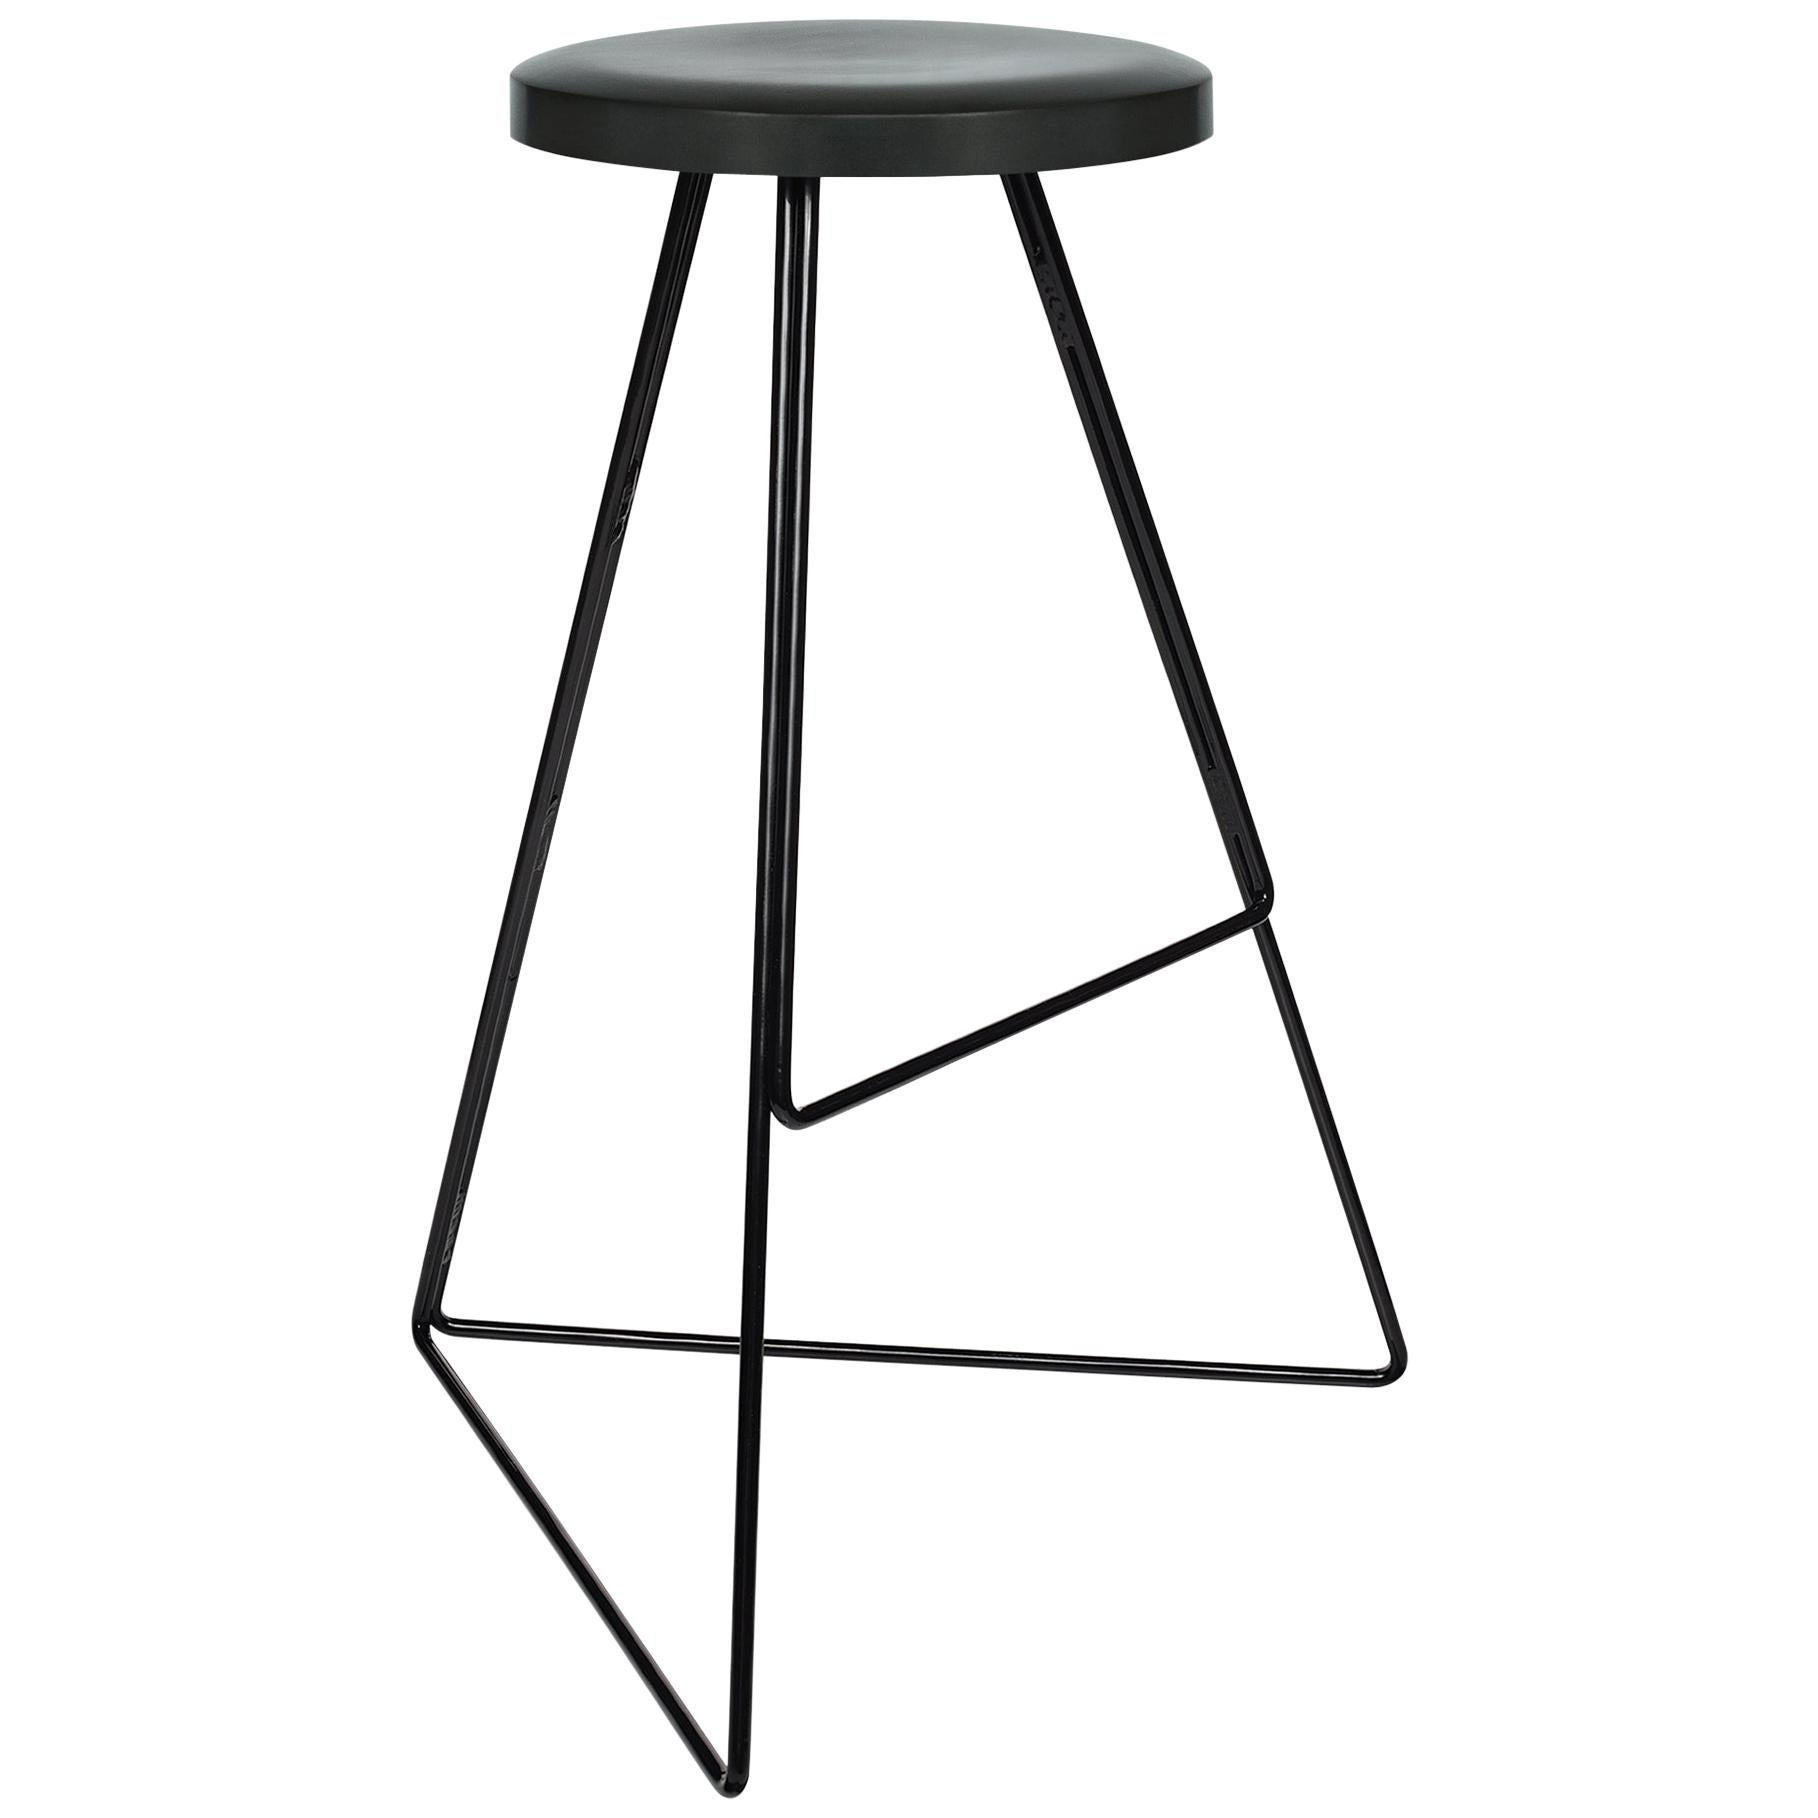 The Coleman Stool, Black and Charcoal, 54 Variations